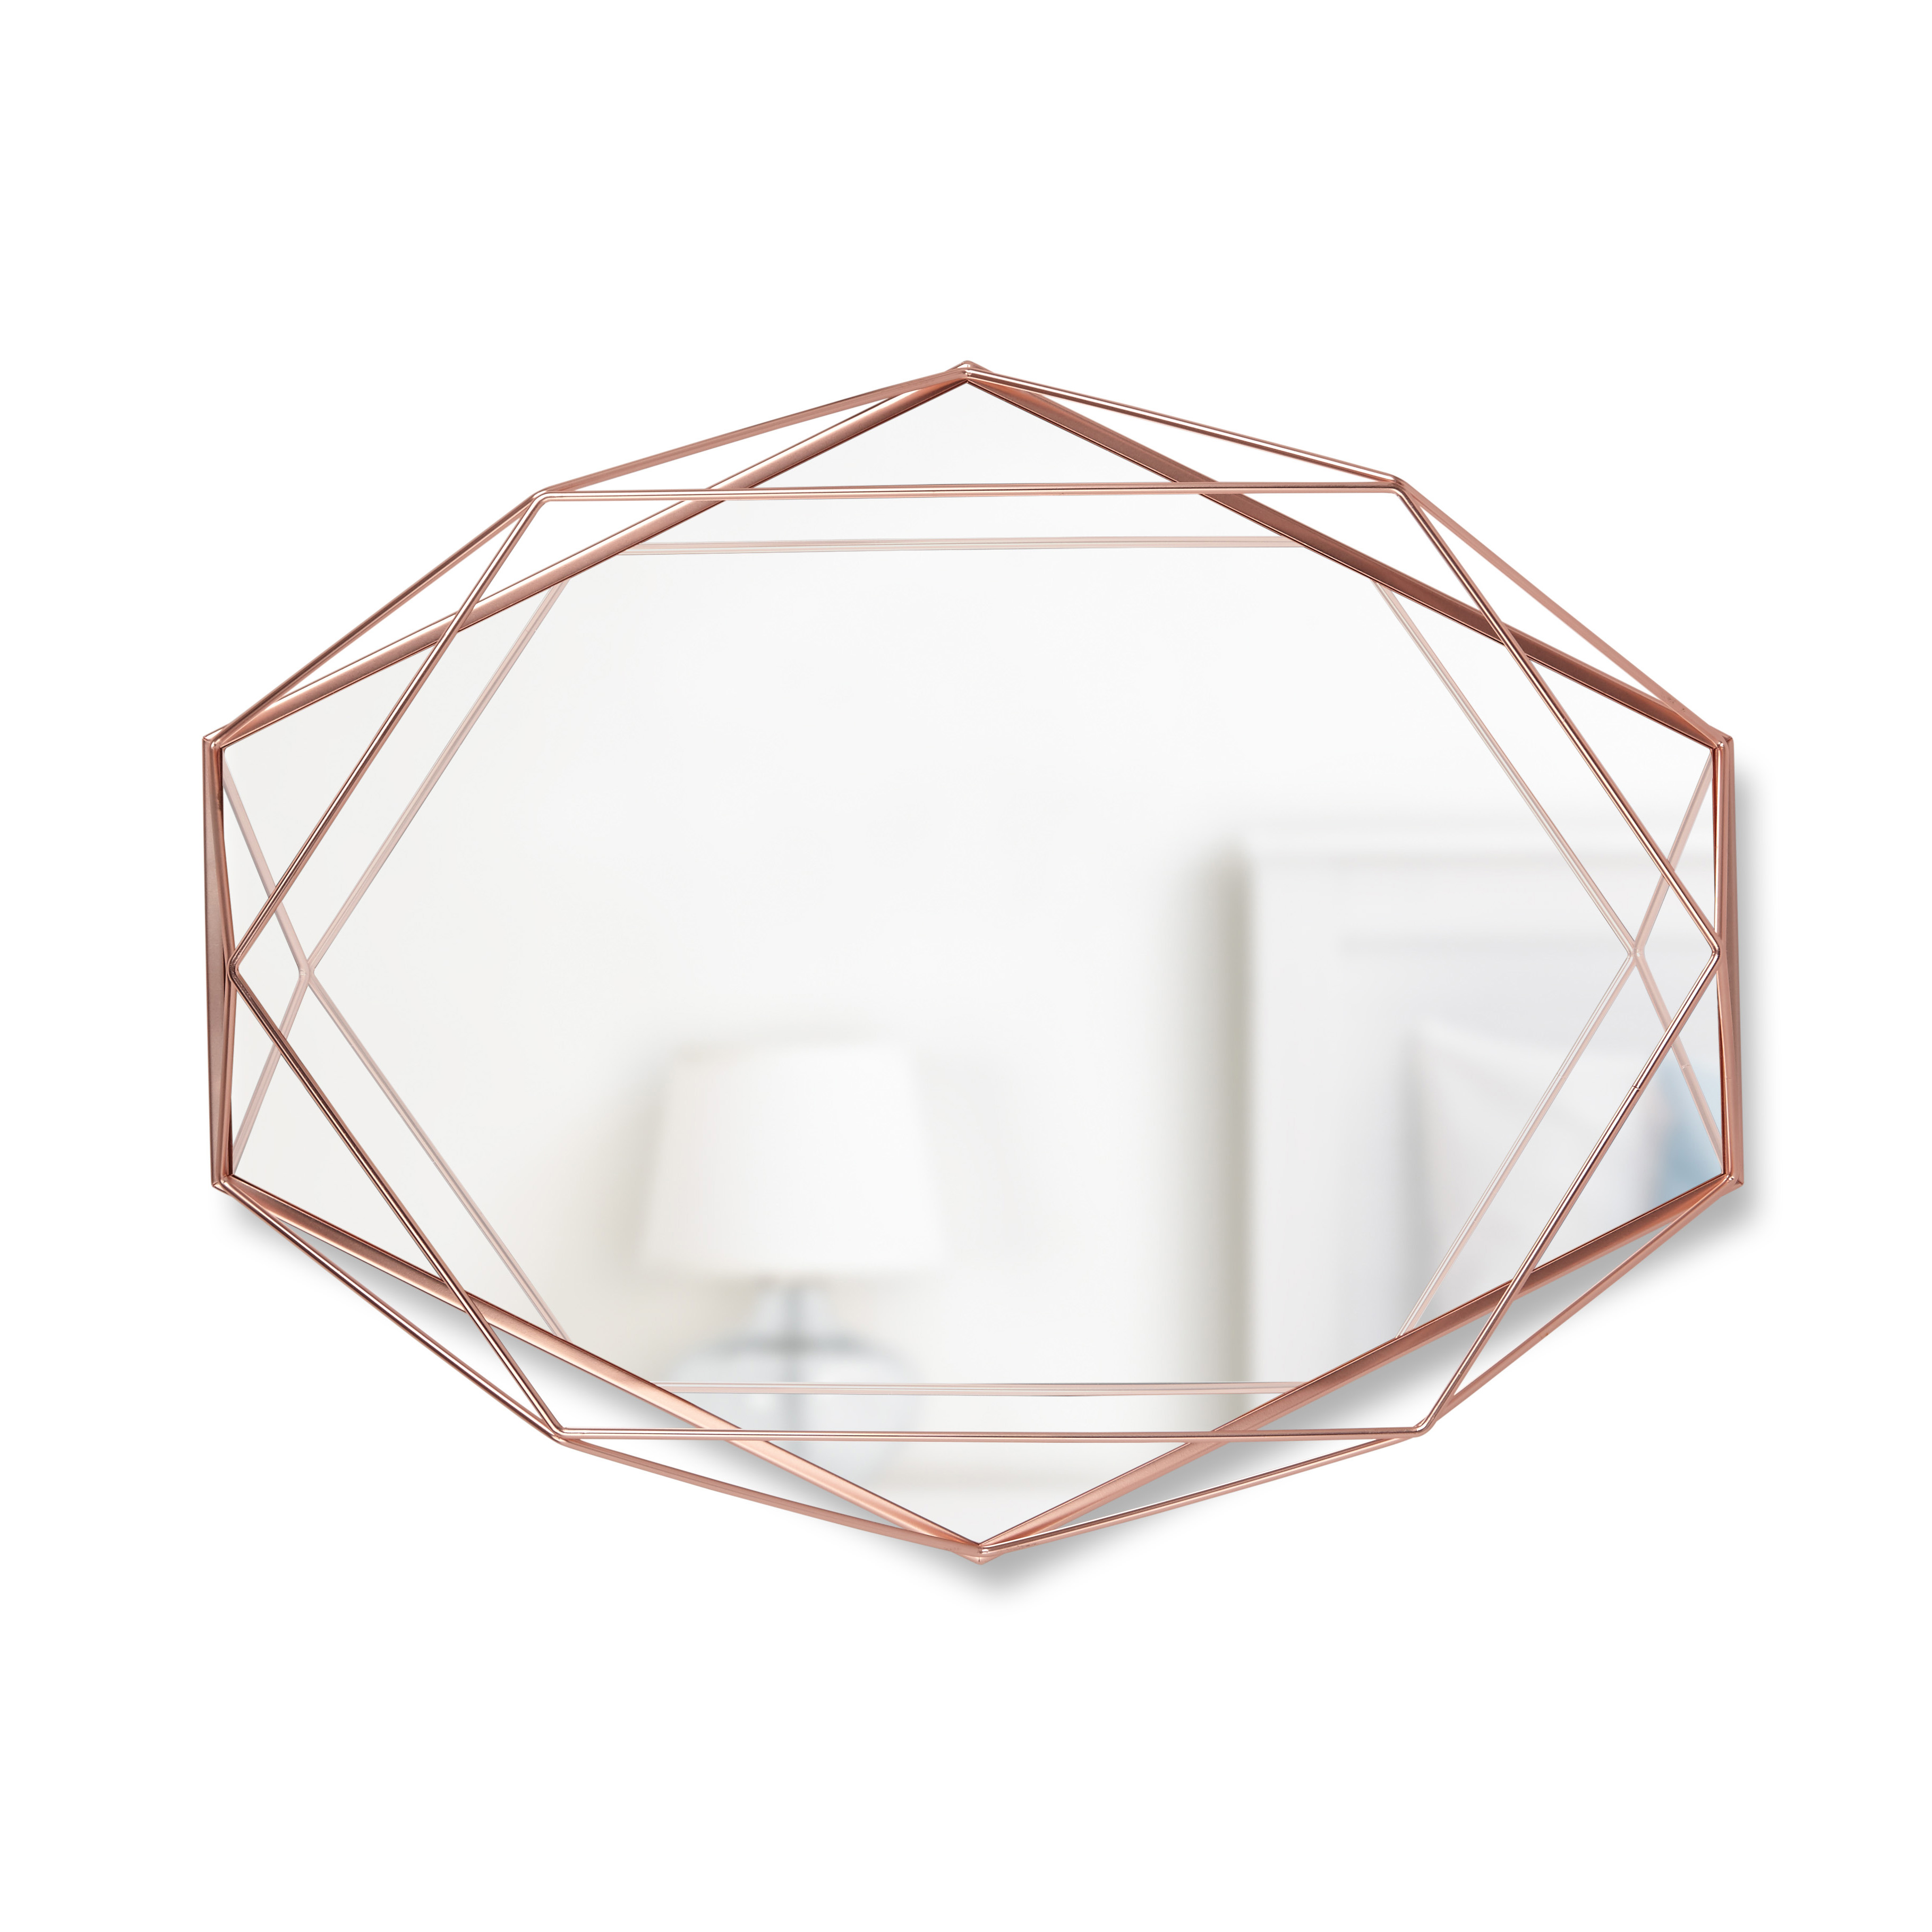 "Umbra Prisma 22x17"" Oval Shaped Wall Mirror, Copper"